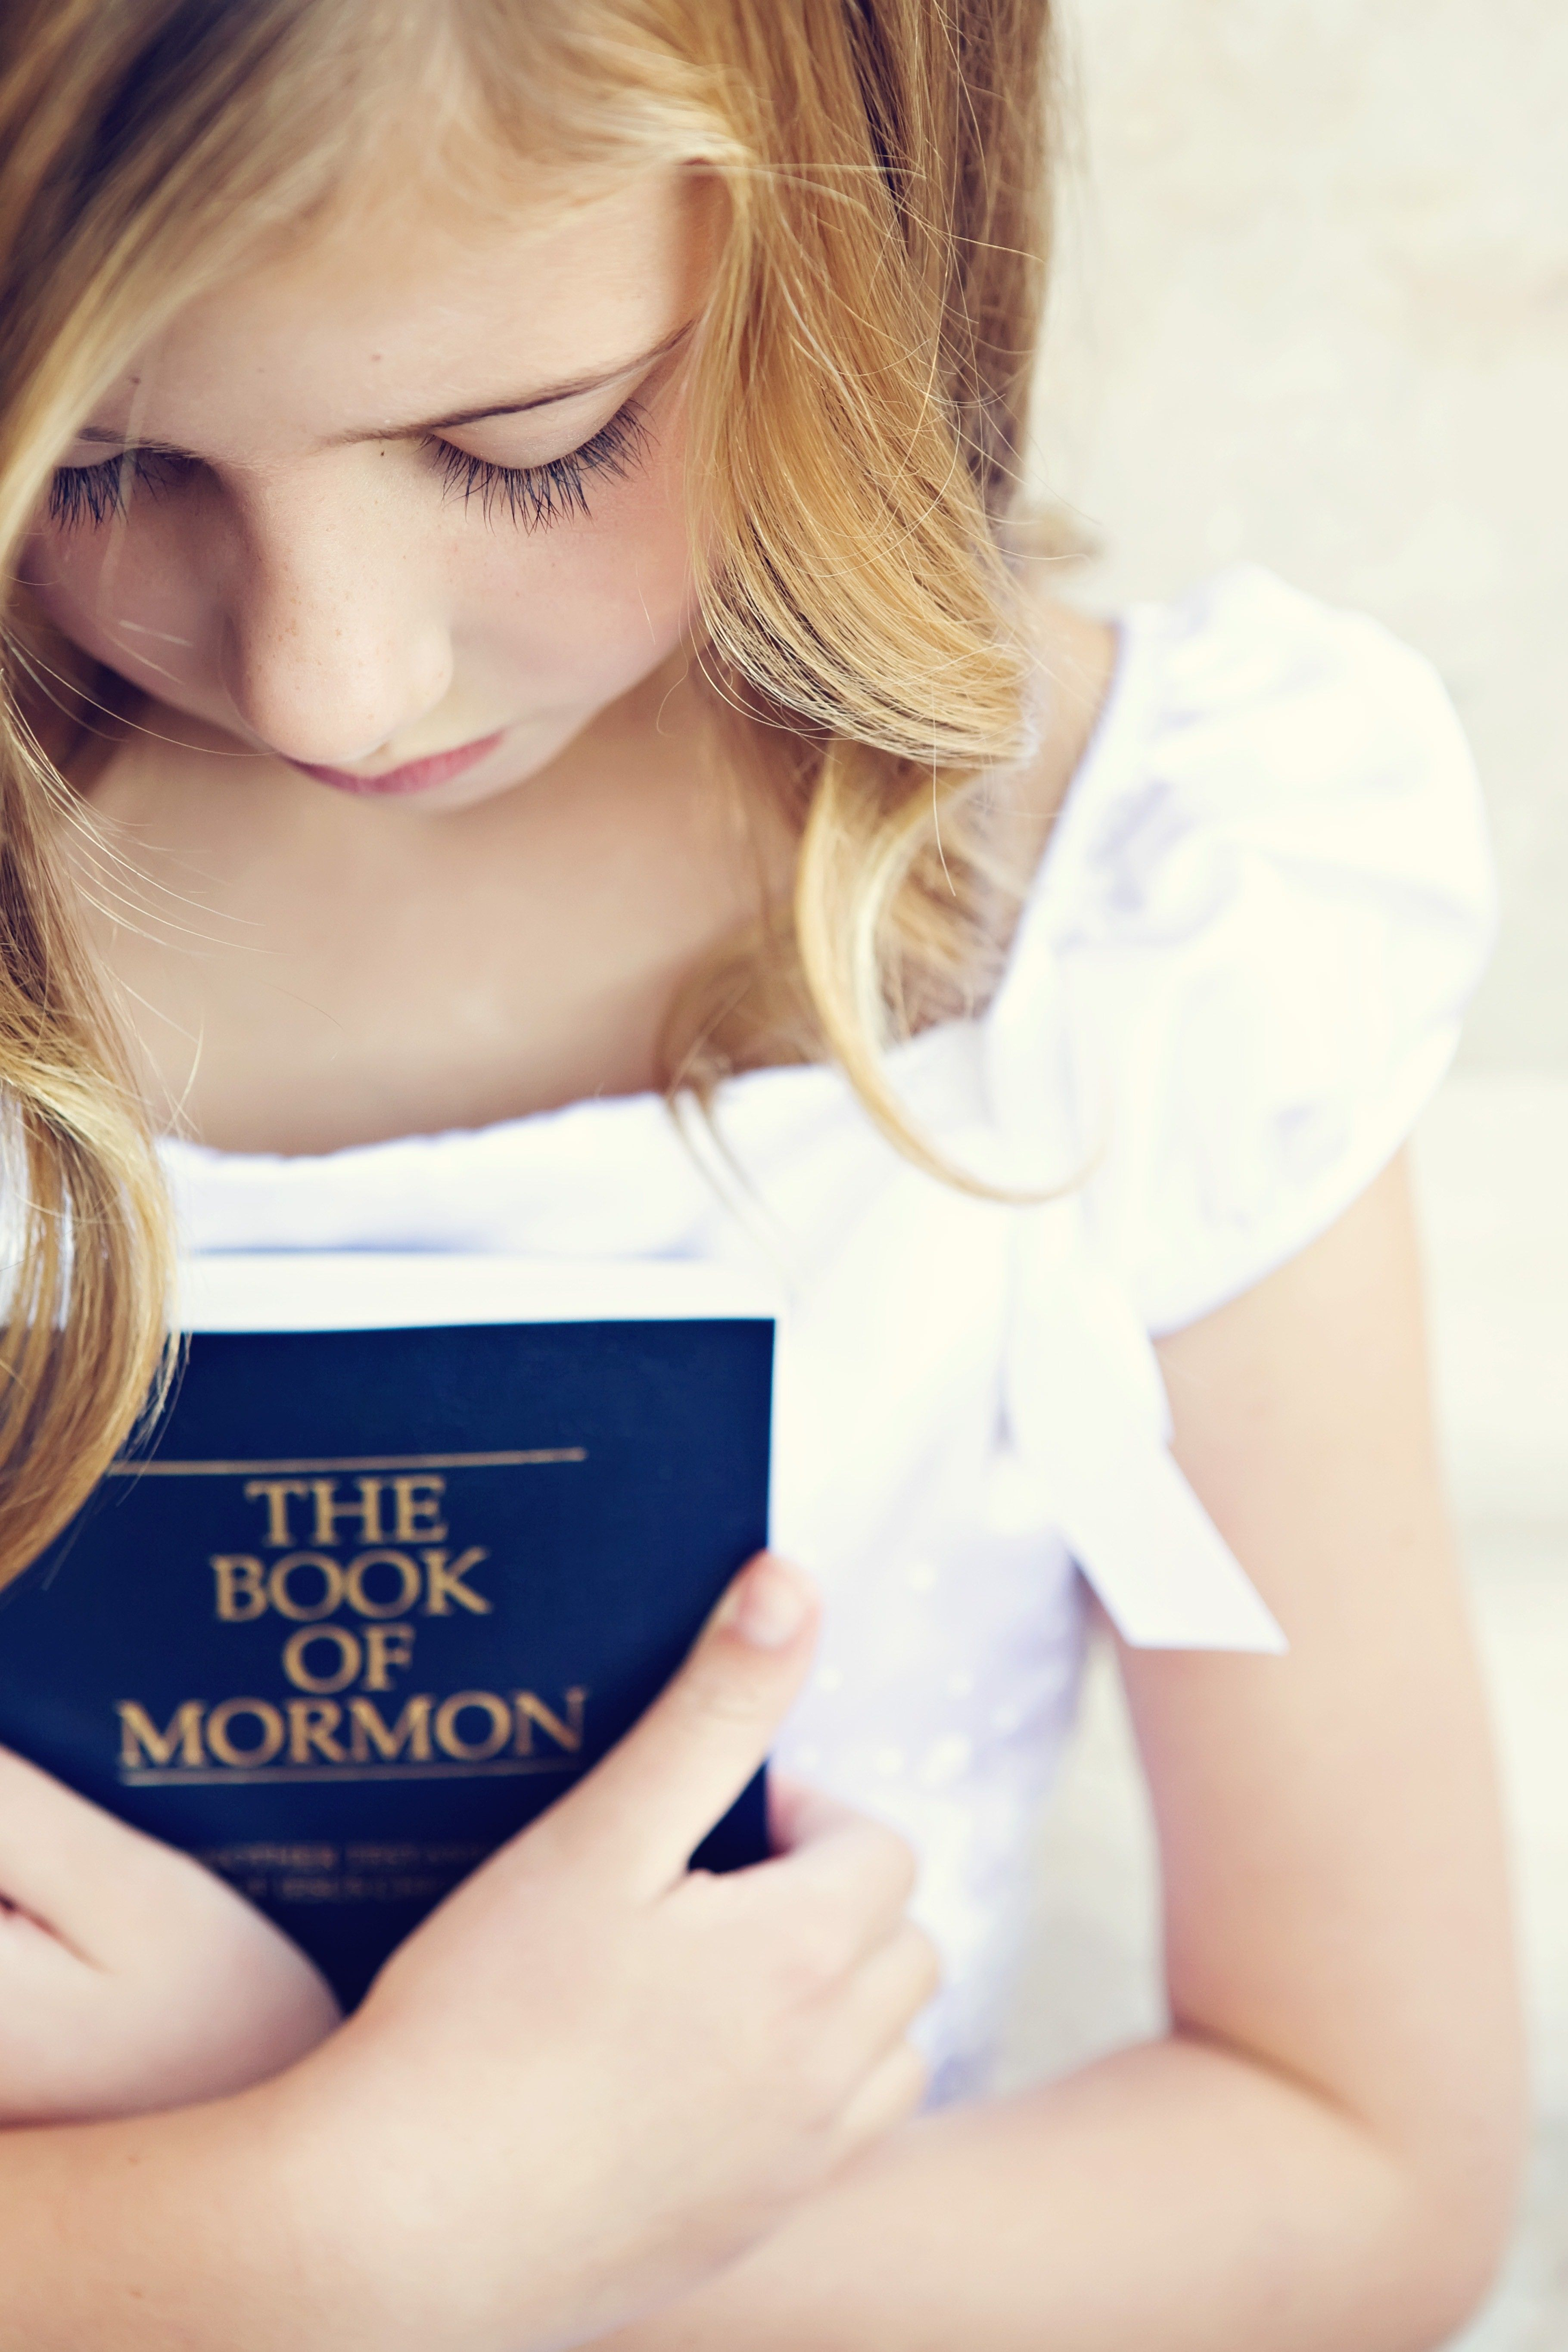 A young girl in a white dress holding a copy of the Book of Mormon.